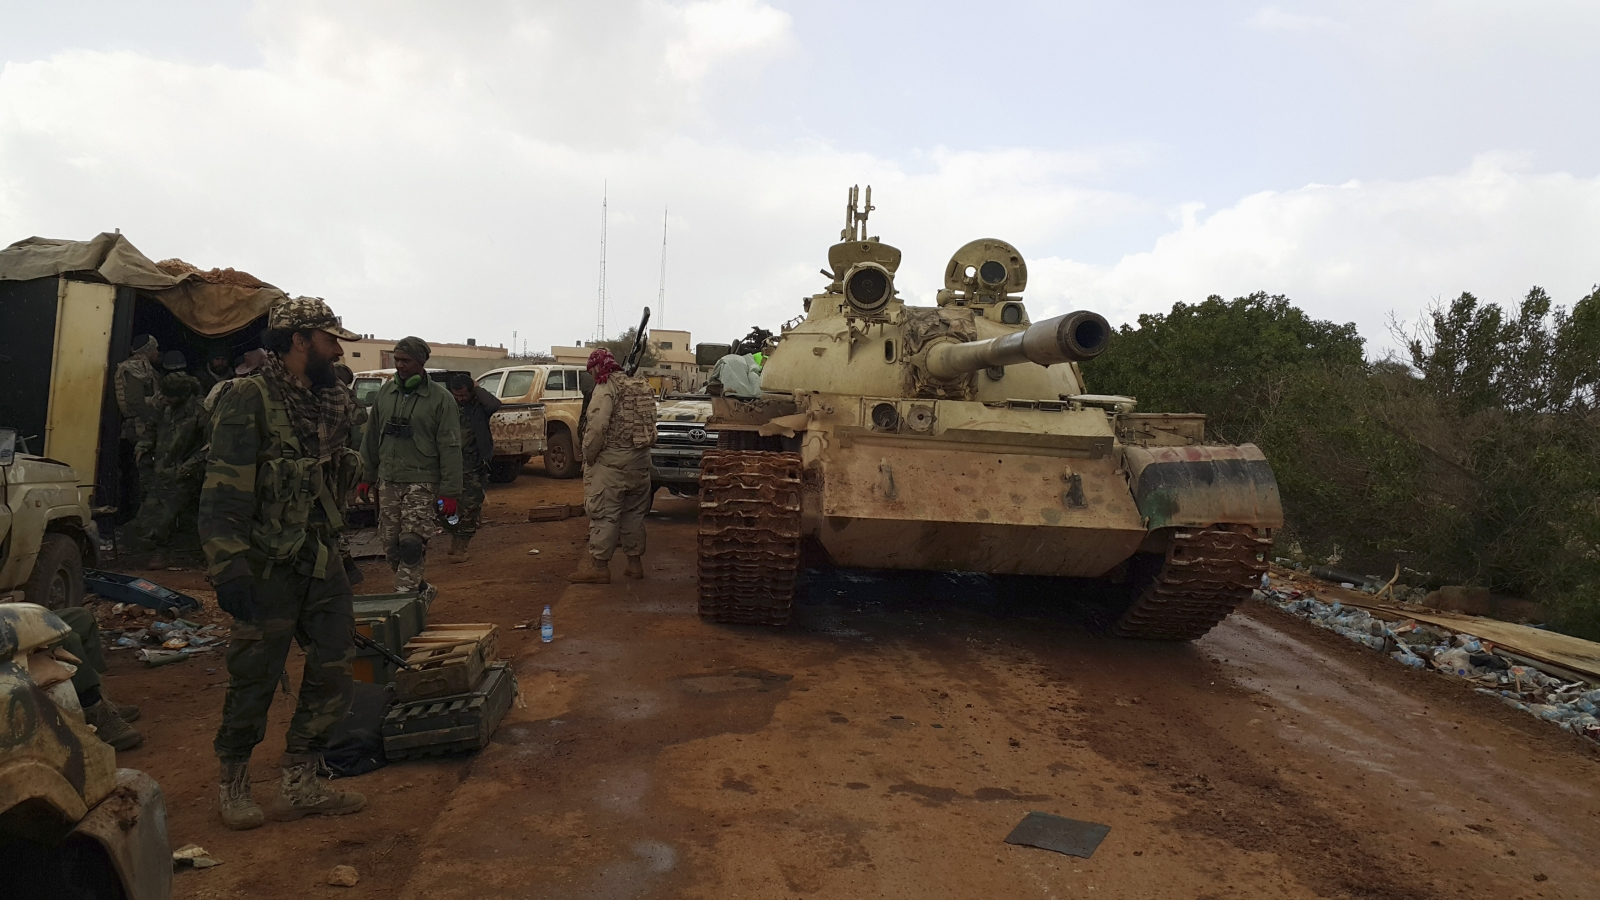 Members of Libyan pro-government forces, backed by locals, stand beside a tank at a rally point during nearby clashes with the Shura Council of Libyan Revolutionaries, an alliance of former anti-Gaddafi rebels who have joined forces with Islamist group An